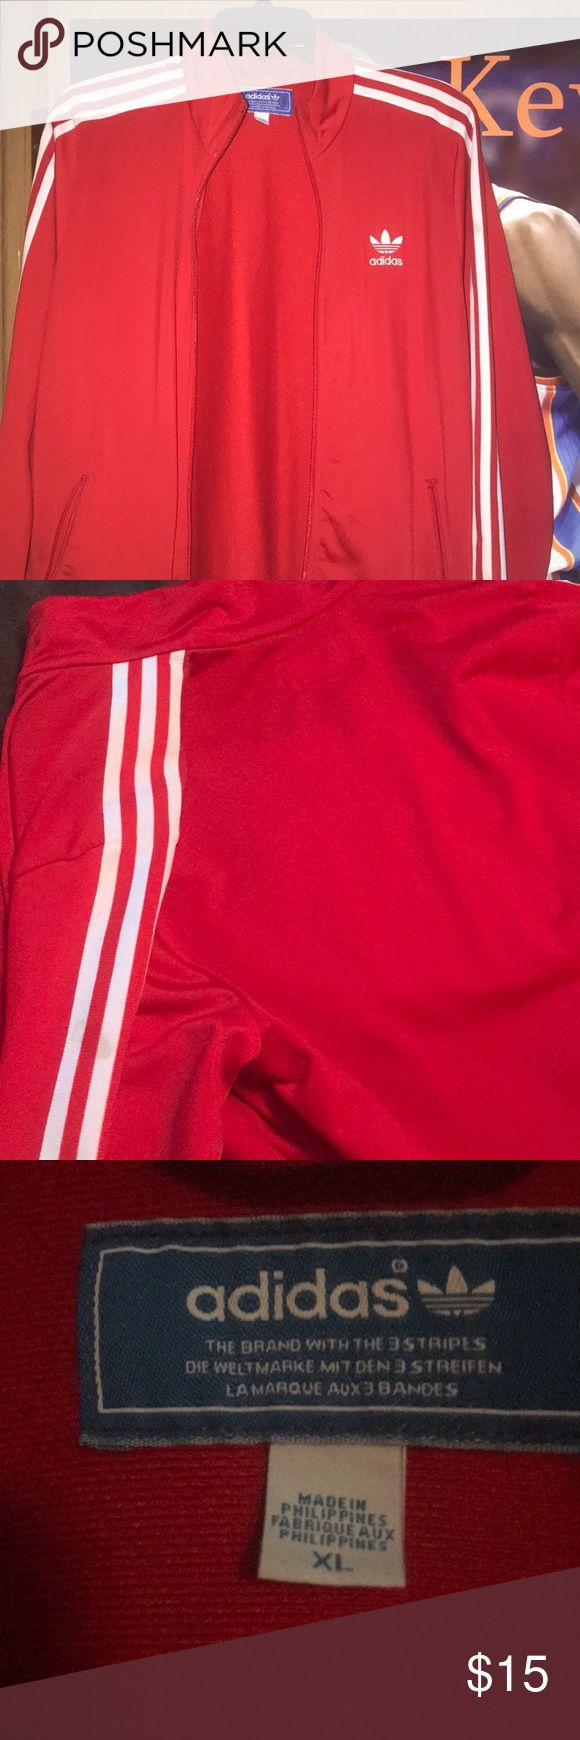 Red Adidas 3 Stripped Jacket Worn only twice, looks good as new! It's a X-Large in big kids, but fits like a medium in women's or small in men's. Adidas Jackets & Coats